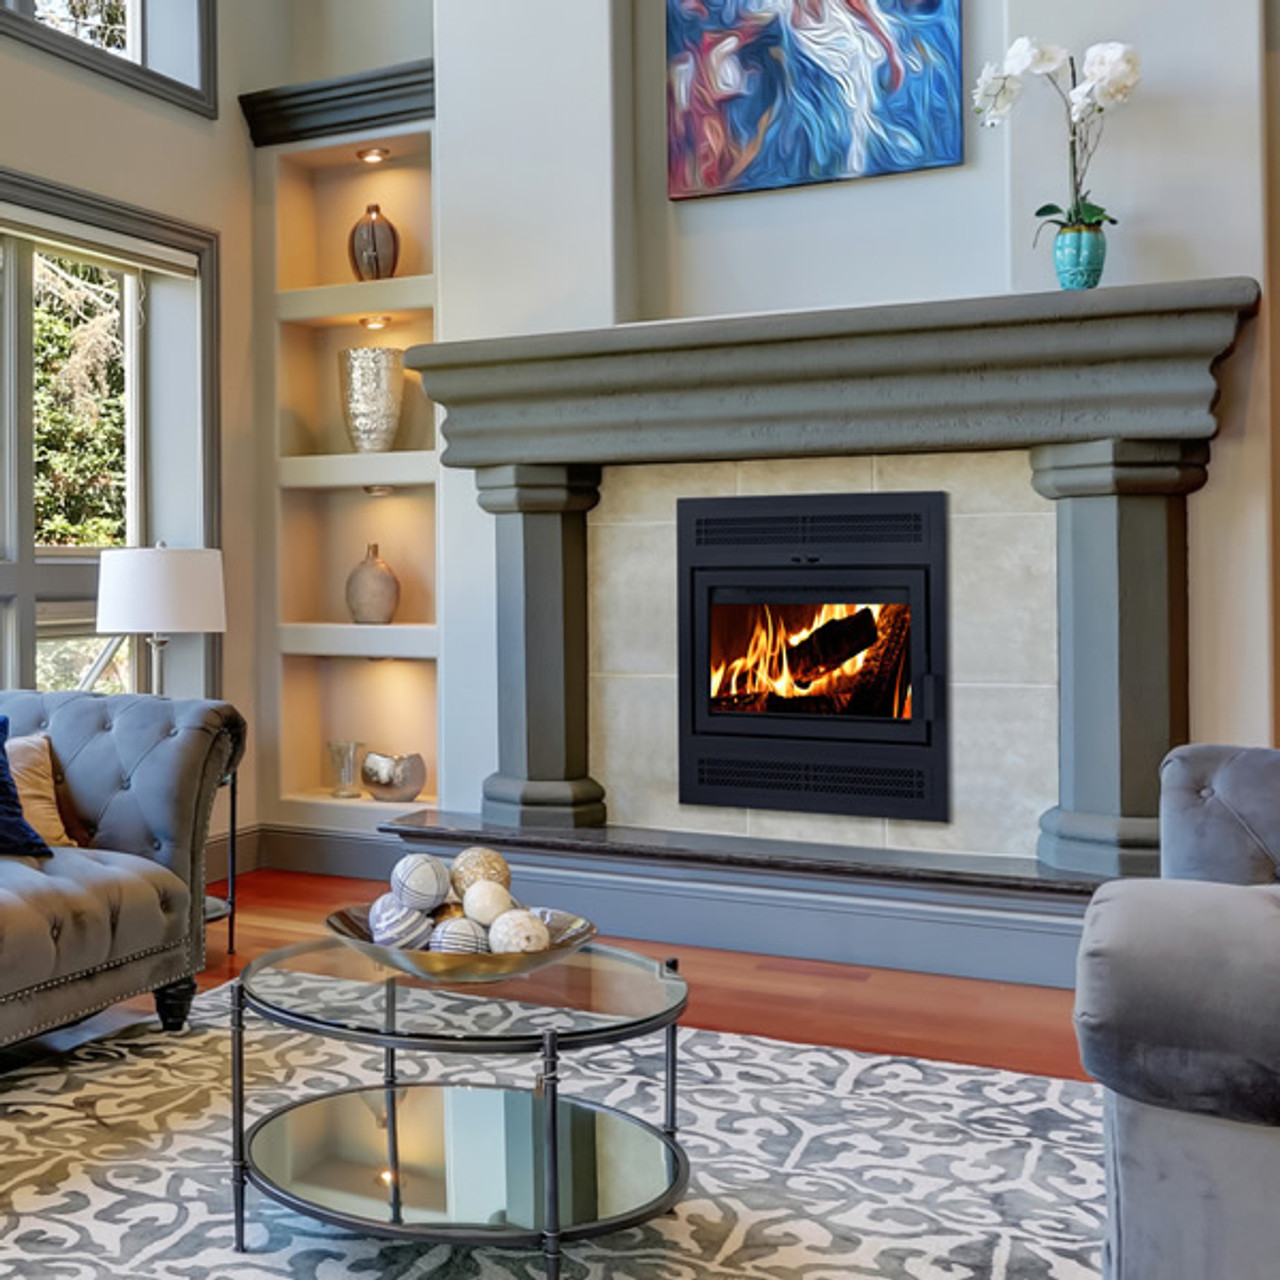 Supreme Astra 24 Zero-Clearance Wood Burning Fireplace ... on Embers Fireplaces & Outdoor Living id=55963